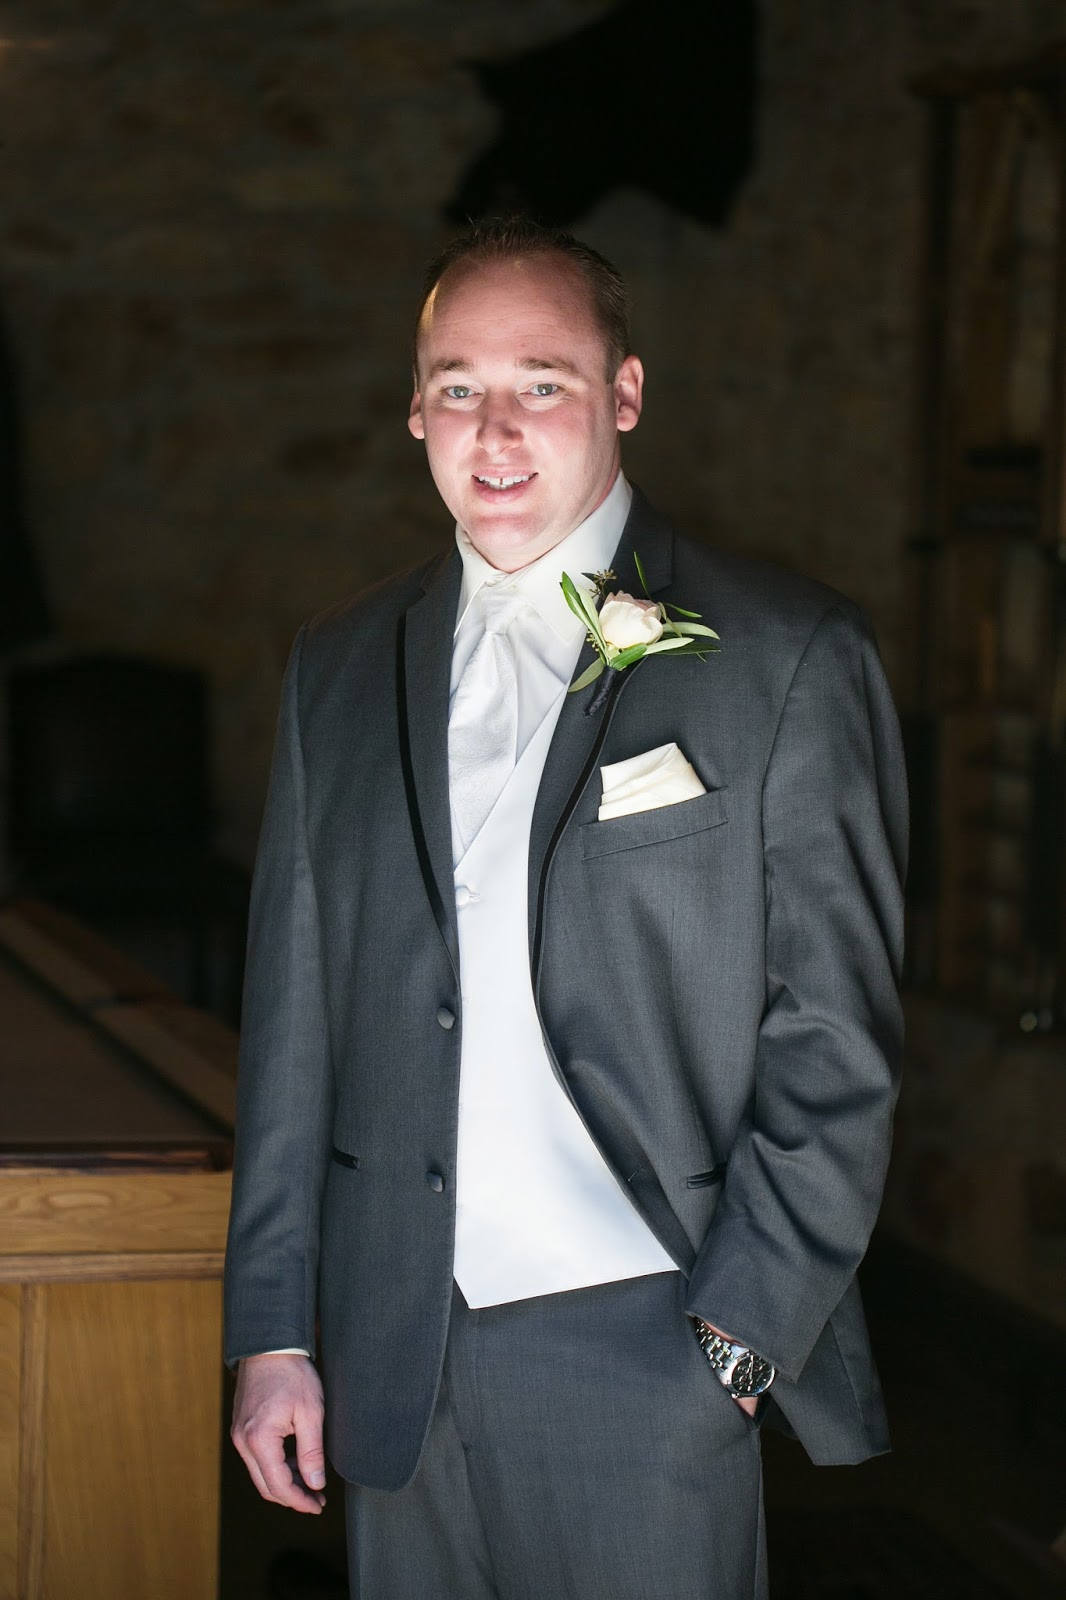 Ring Bearer Tuxedos For Wedding 56 Fabulous The groom looking handsome